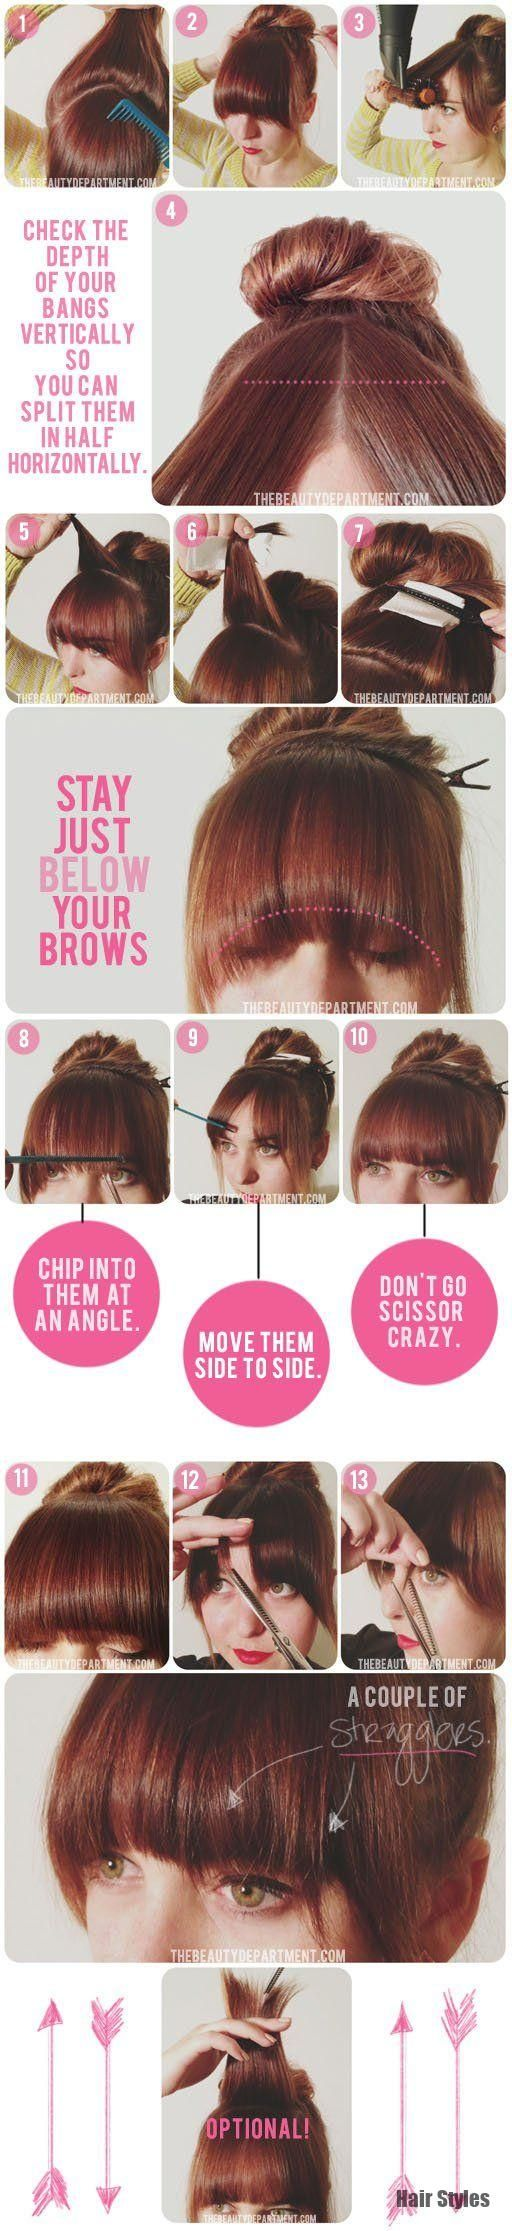 New 13 Simple and surprisingly useful hairstyle tips to keep your hair shiny